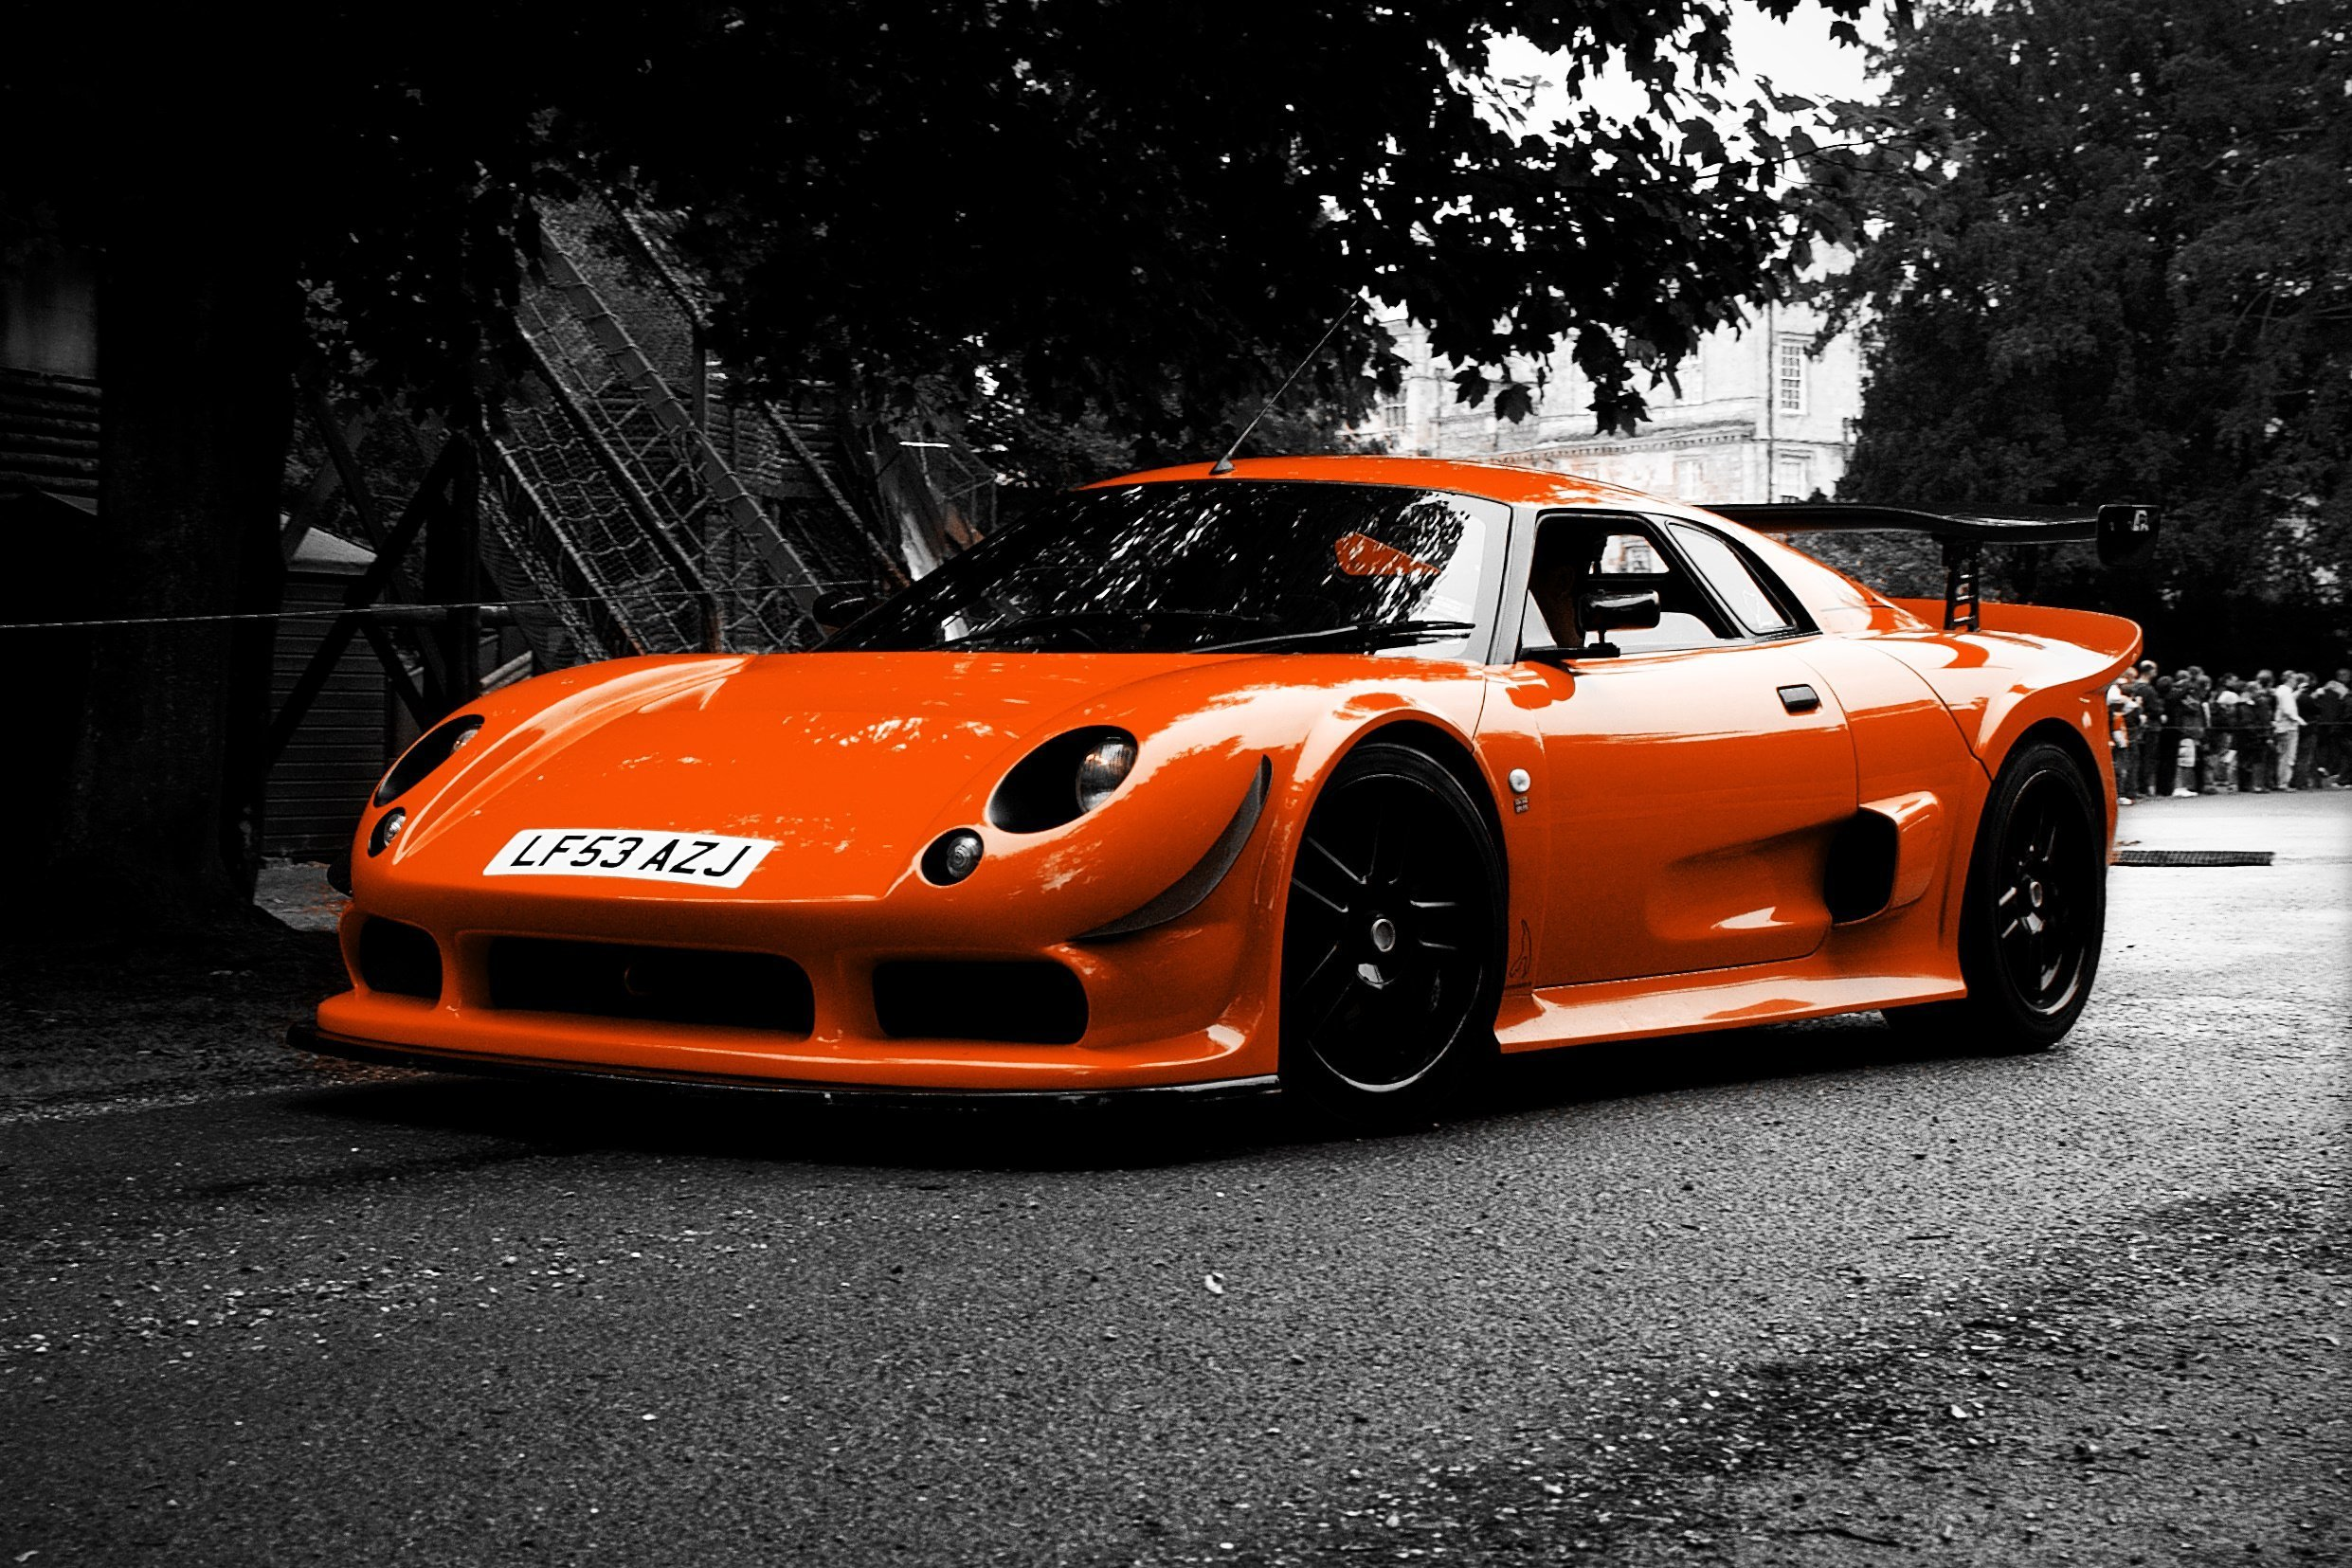 Latest Gto M12 M400 M600 Noble Supercars Cars Wallpaper Free Download